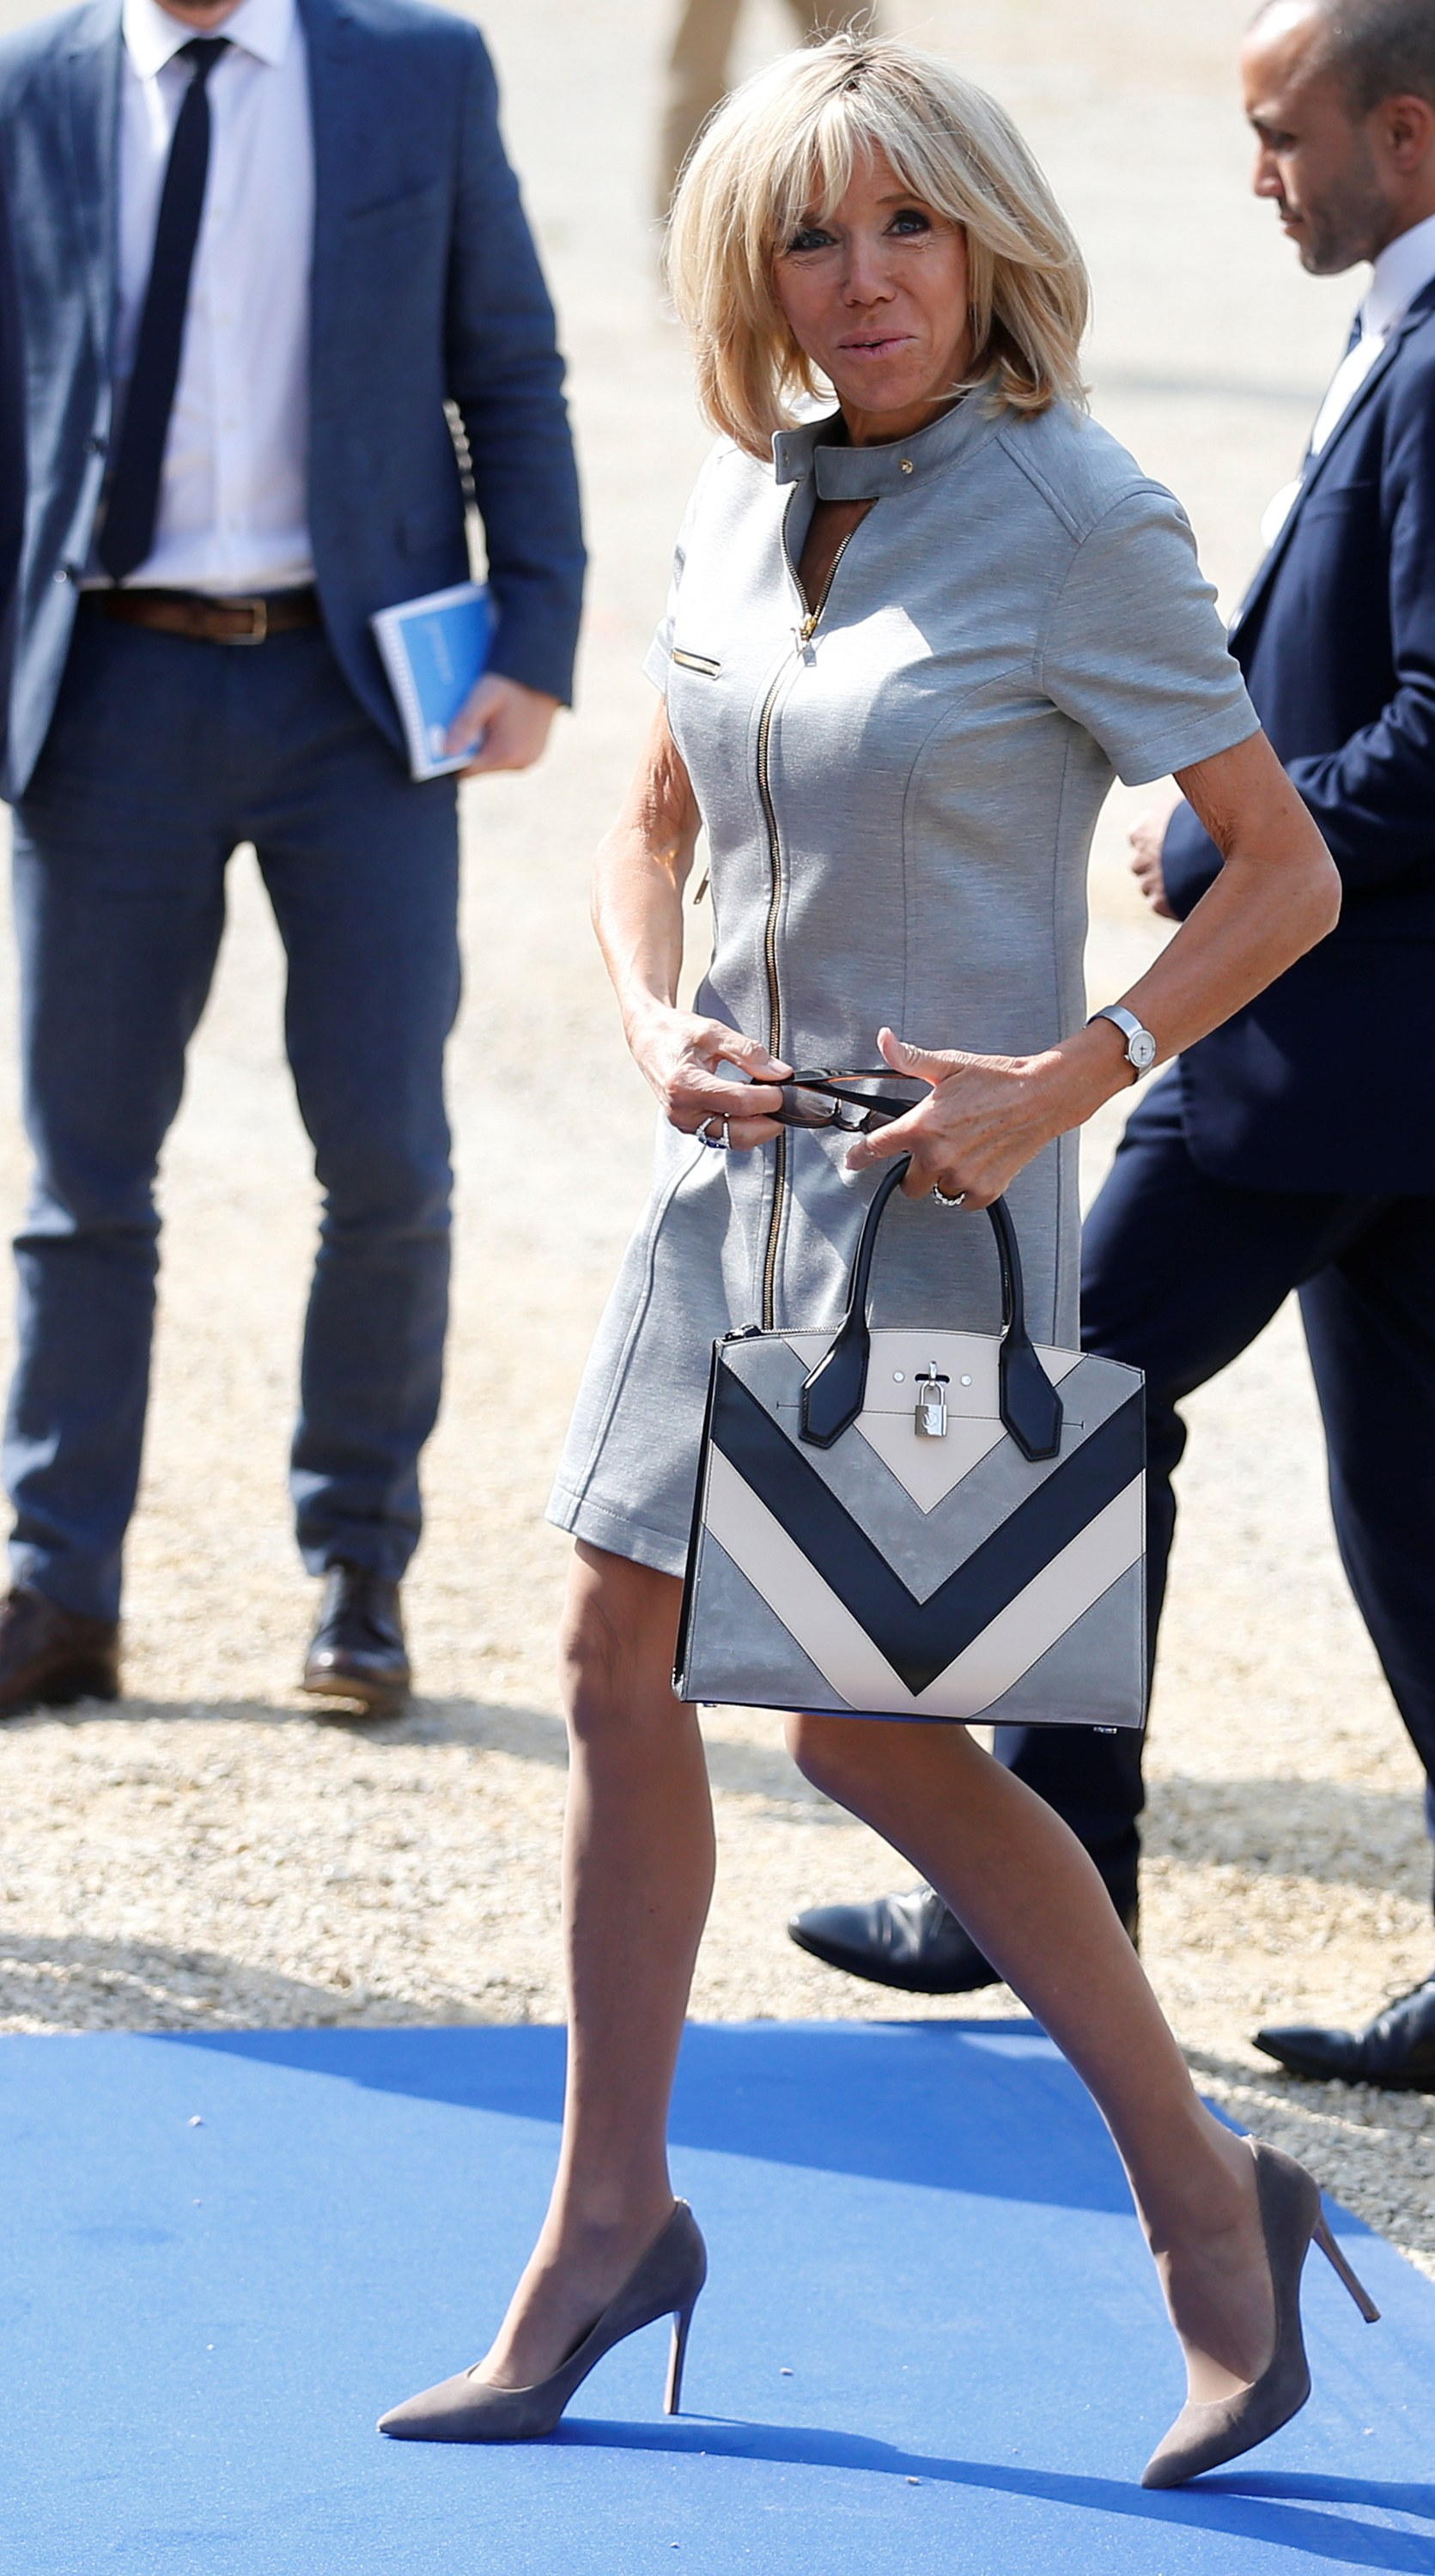 """<p><a href=""""https://style.nine.com.au/2017/07/14/11/08/style_melania-and-brigitte"""" target=""""_blank"""" title=""""Brigitte Macron"""" draggable=""""false"""">Brigitte Macron</a> is redefining First Lady style (pay attention Melania), and she's gone and done it again overnight.</p> <p>The striking 64-year-old, also known as Brigitte Trogneux, has been dubbed the Jane Fonda of France by the Parisian press and with good reason.</p> <p>Macron is in Belgium where she headed to a post-NATO summit dinner overnight with husband President Emmanuel Macron, looking every inch the fashion royalty that she is.</p> <p>Wearing one of her go-to designers, <a href=""""https://style.nine.com.au/2018/05/30/12/20/louis-vuitton-cruise-2018-emma-stone-jennifer-connolly"""" target=""""_blank"""" title=""""Louis Vuitton"""" draggable=""""false"""">Louis Vuitton</a>, Macron donned a grey mod a-line mini dress, in other words, a stand-out.</p> <p>She accessorised her look with grey suede pumps and a Louis Vuitton City Steamer bag.</p> <p>Macron has been forming a relationship with Louis Vuitton since 2014, following a meeting with Delphine Arnault, executive vice president of Louis Vuitton.</p> <p>Macron's approach to dressing fails to take into account traditional notions of what mature women want and her rock chic style has already struck a chord.</p> <p>""""She's rock'n'roll. Not for a second does she say, 'I'm 63, so I cannot wear short skirts.' Twelve-inch heels, sleeveless dresses, leather trousers, she dares everything,"""" Delphine de Canecaude, a Paris-based art director, toldL'Express: """"She is a mega wonder woman.""""</p> <p>Take a look at some of the French First lady's most stylish looks.</p>"""